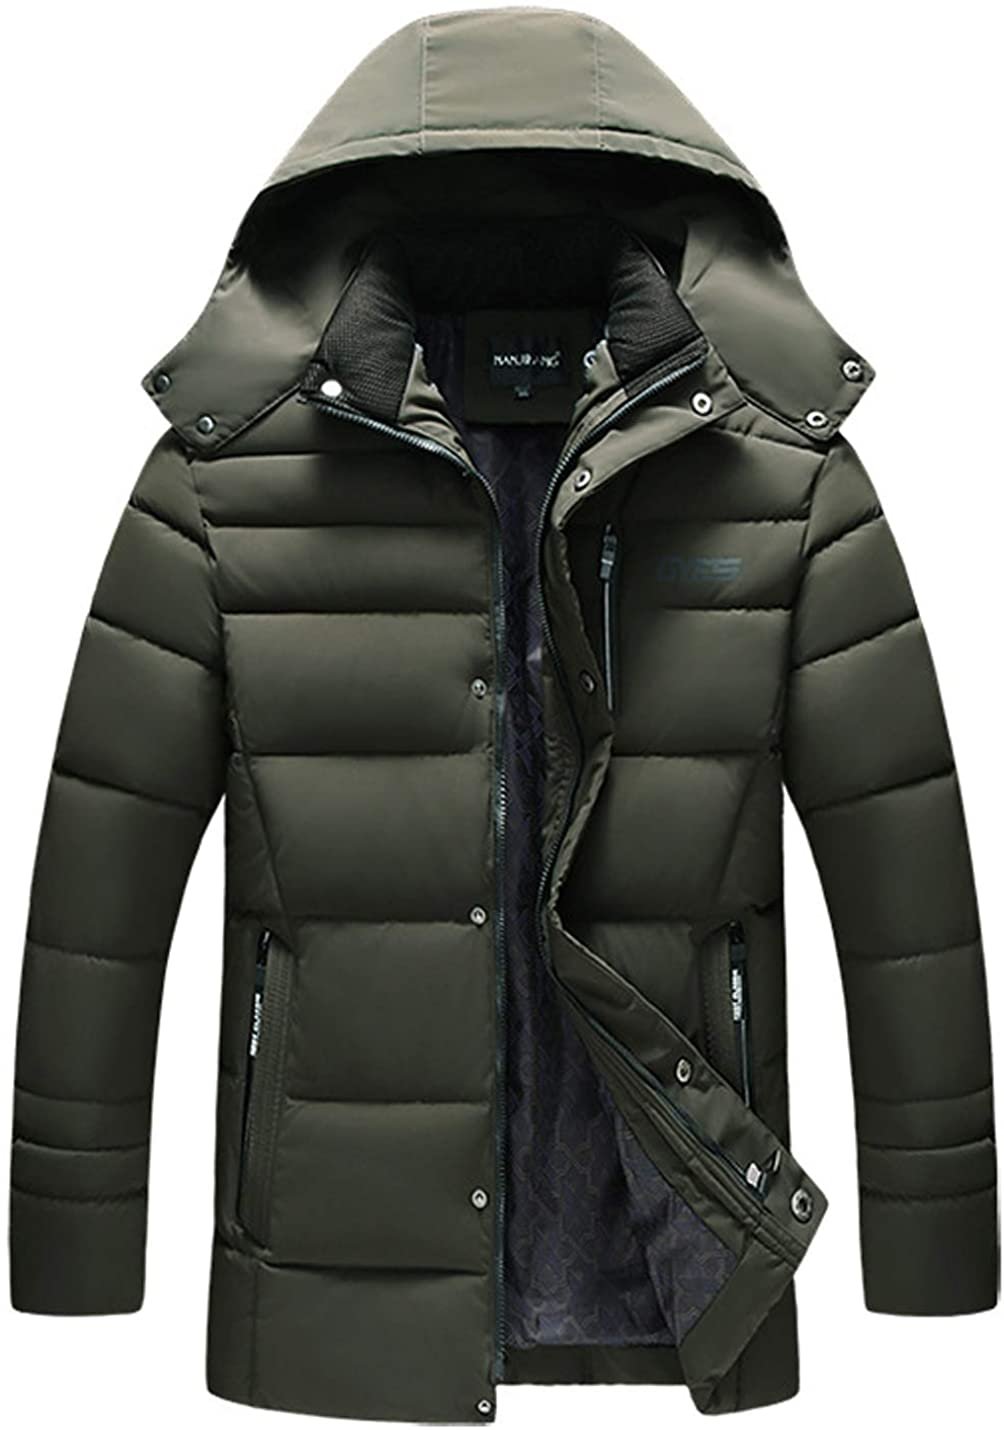 Flygo Mens Winter Quilted Puffer Down Warm Cotton Padded Jacket Coat with Removable Hood